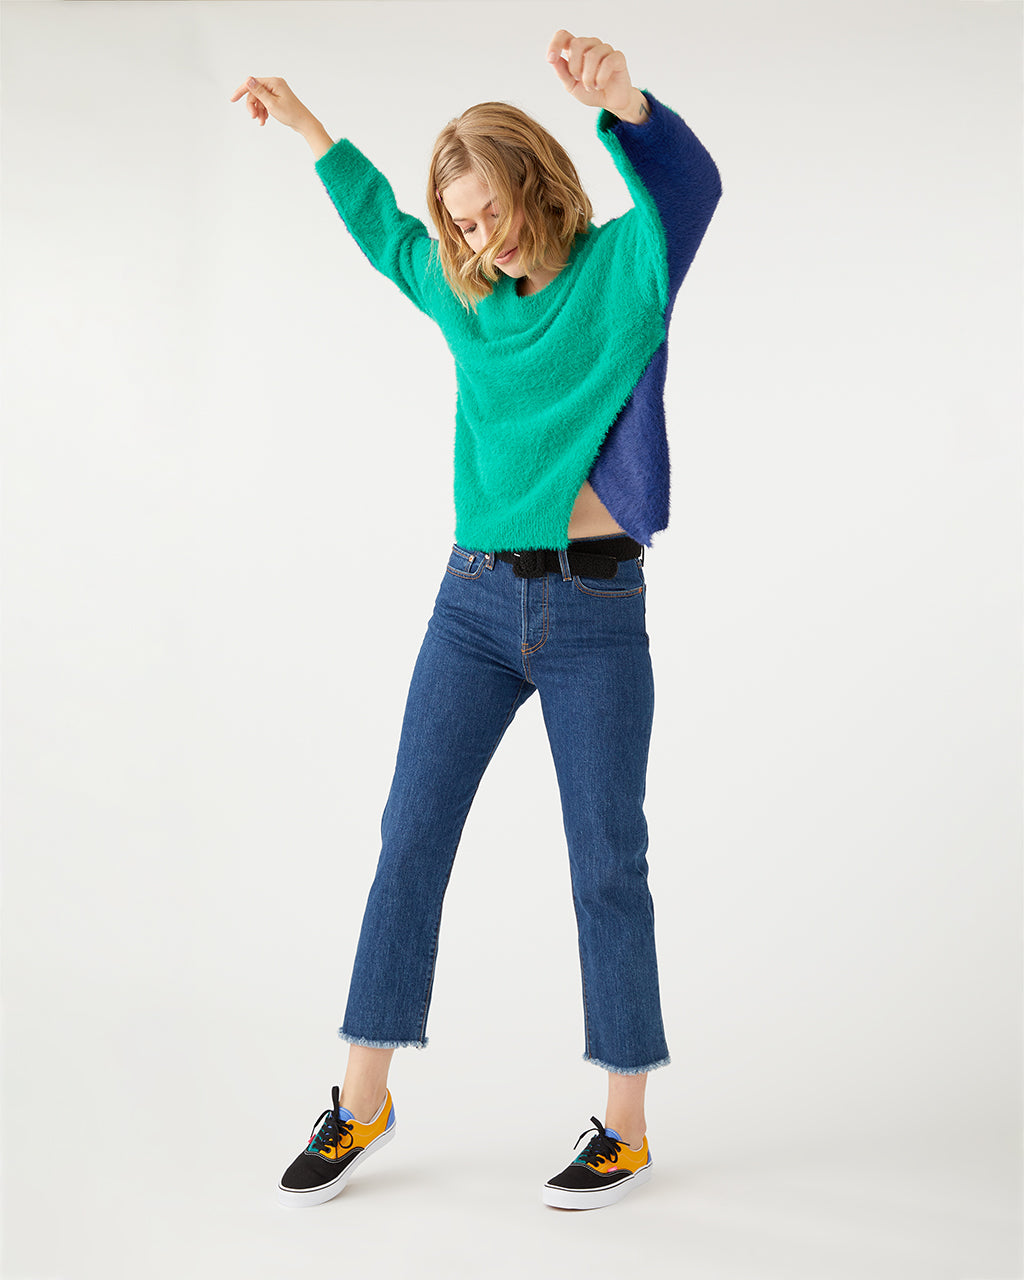 Green & Navy Sweater